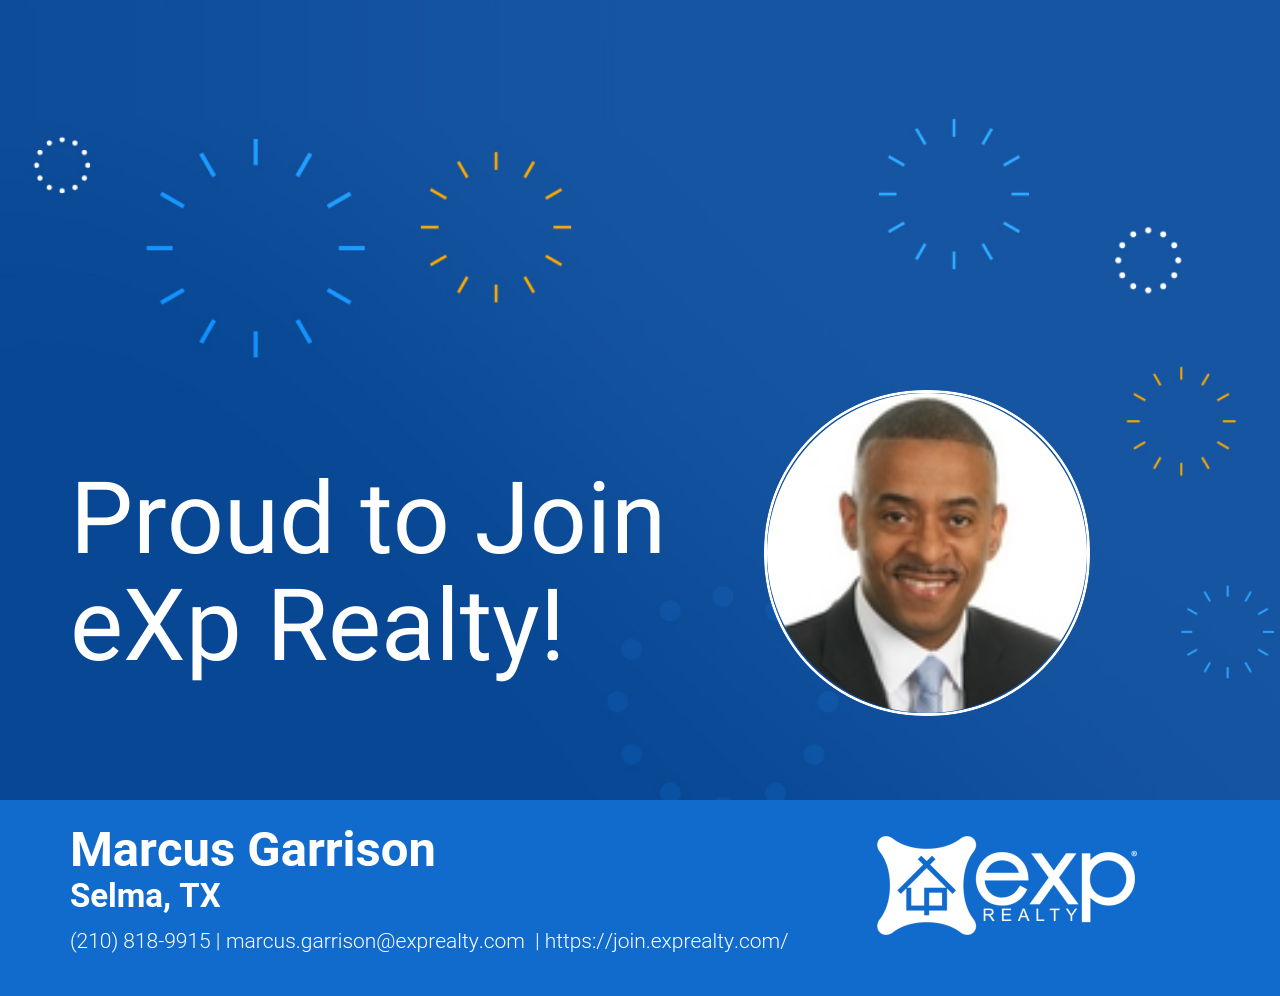 Marcus Garrison Joined eXp Realty!